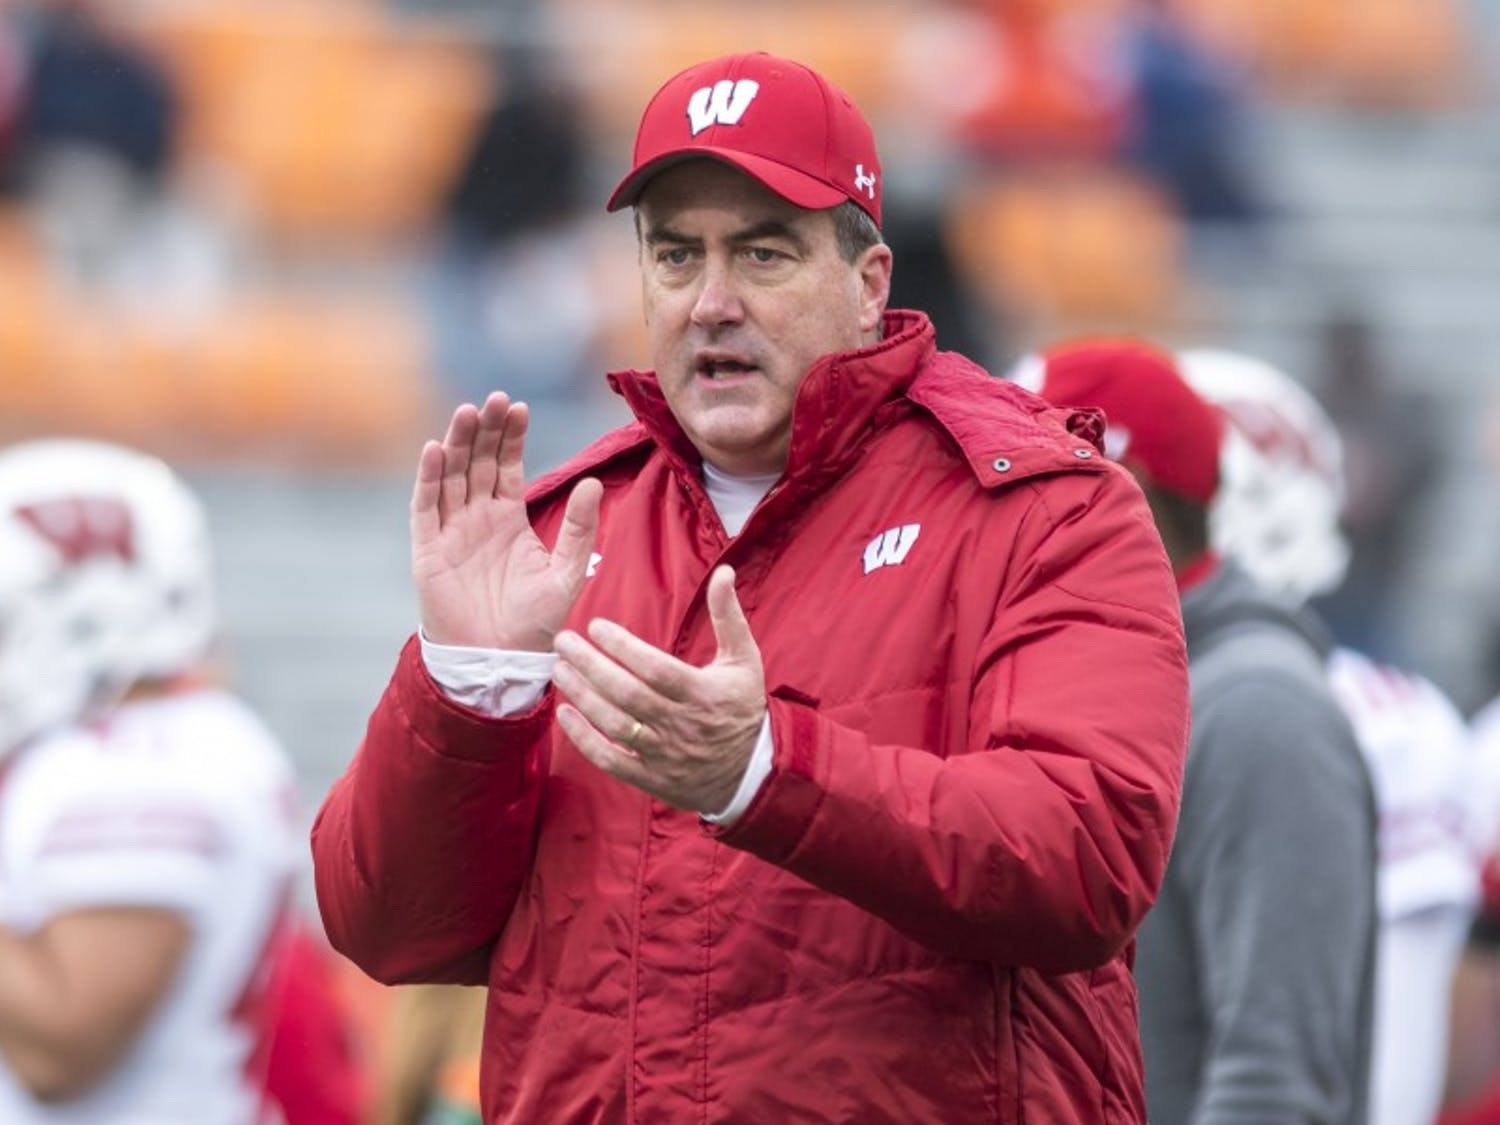 Coach Chryst is one of the twelve members of Wisconsin football to test positive for COVID-19